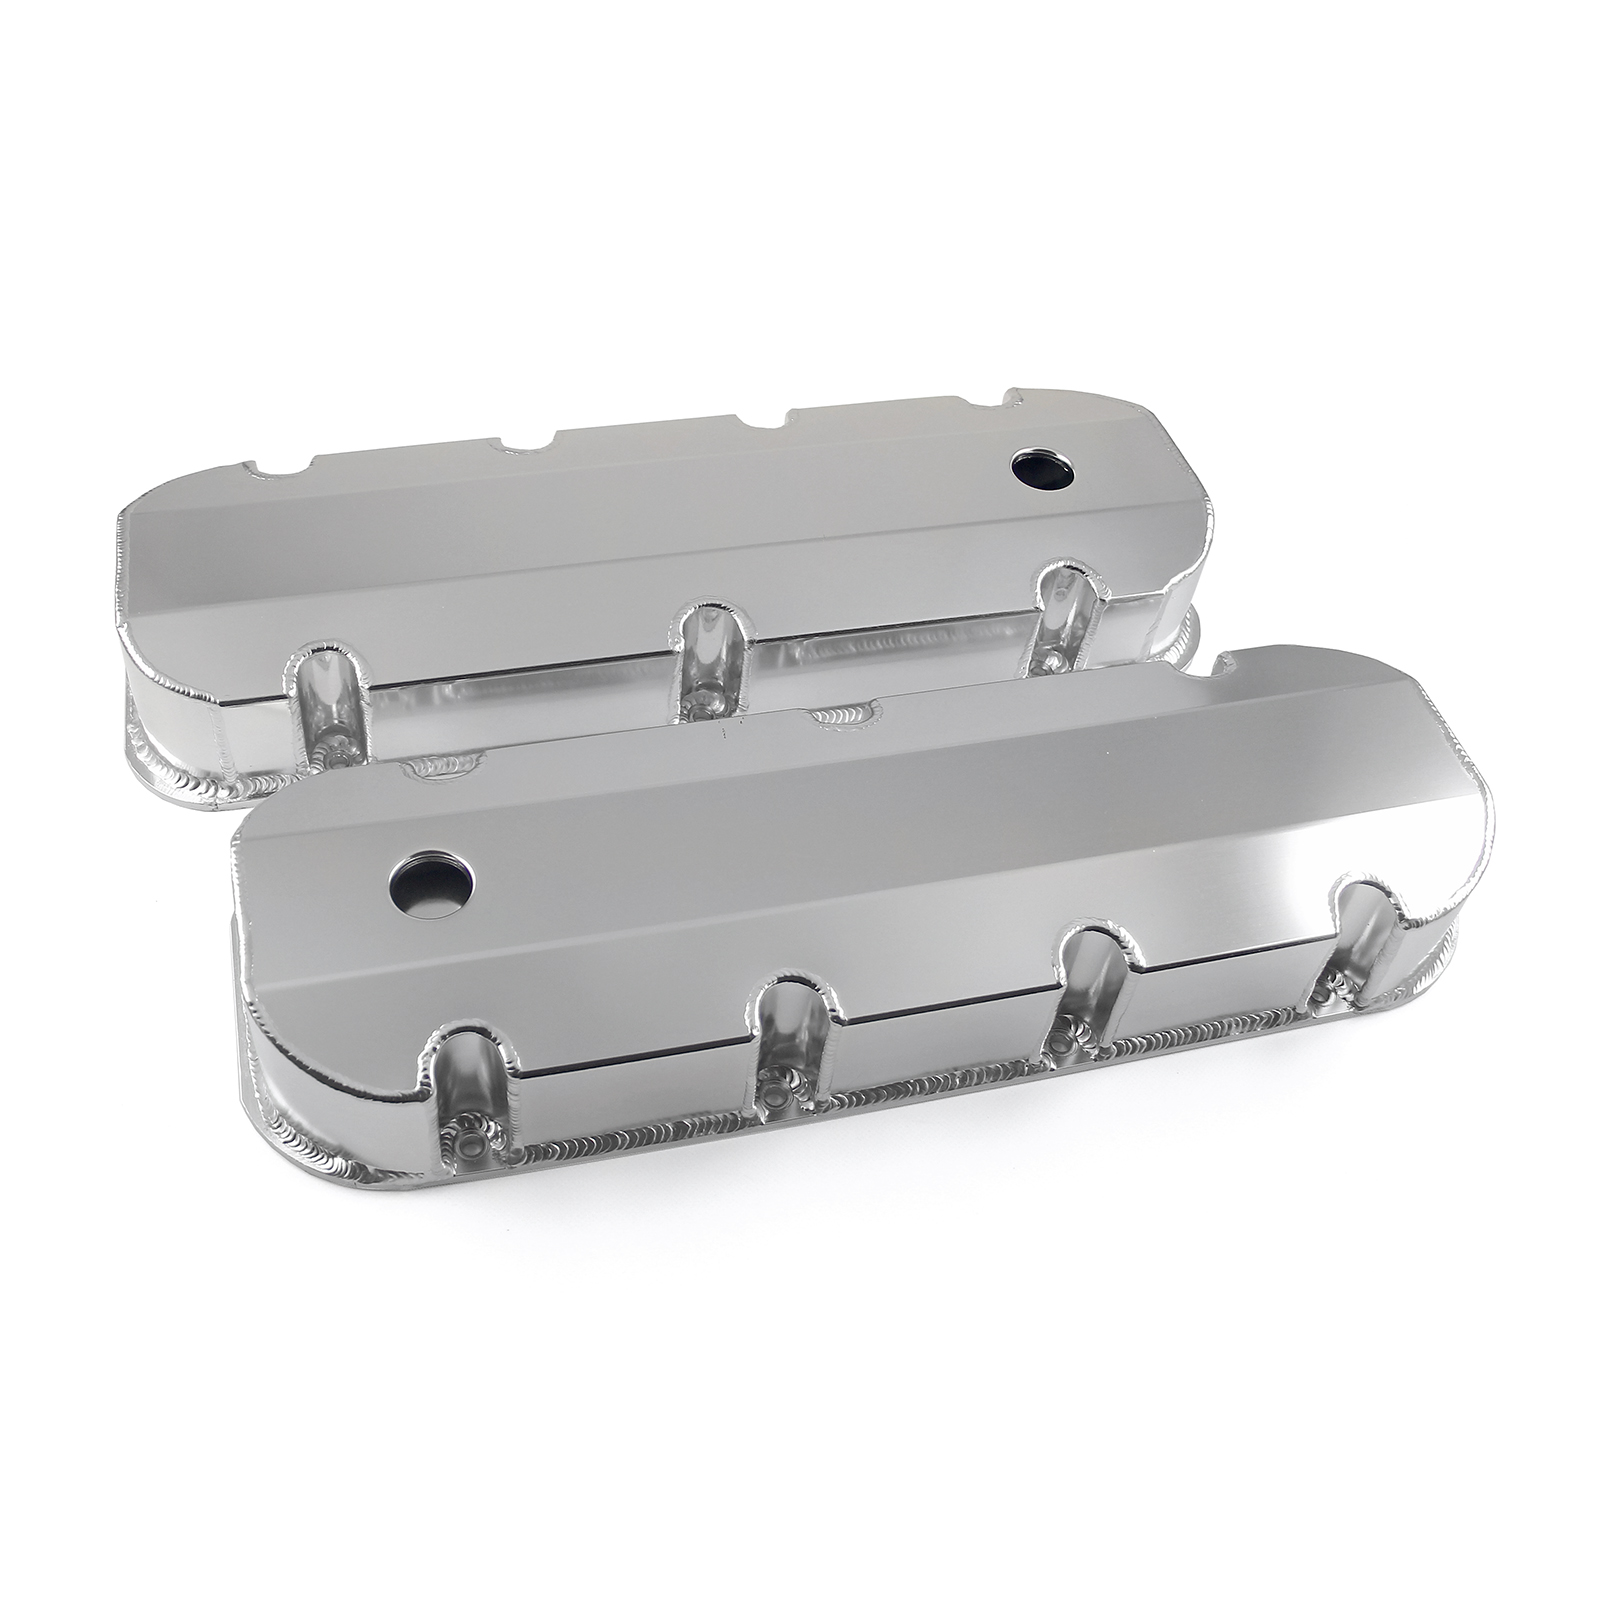 Chevy BBC 454 Anodized Fabricated Valve Covers - Tall w/ Hole